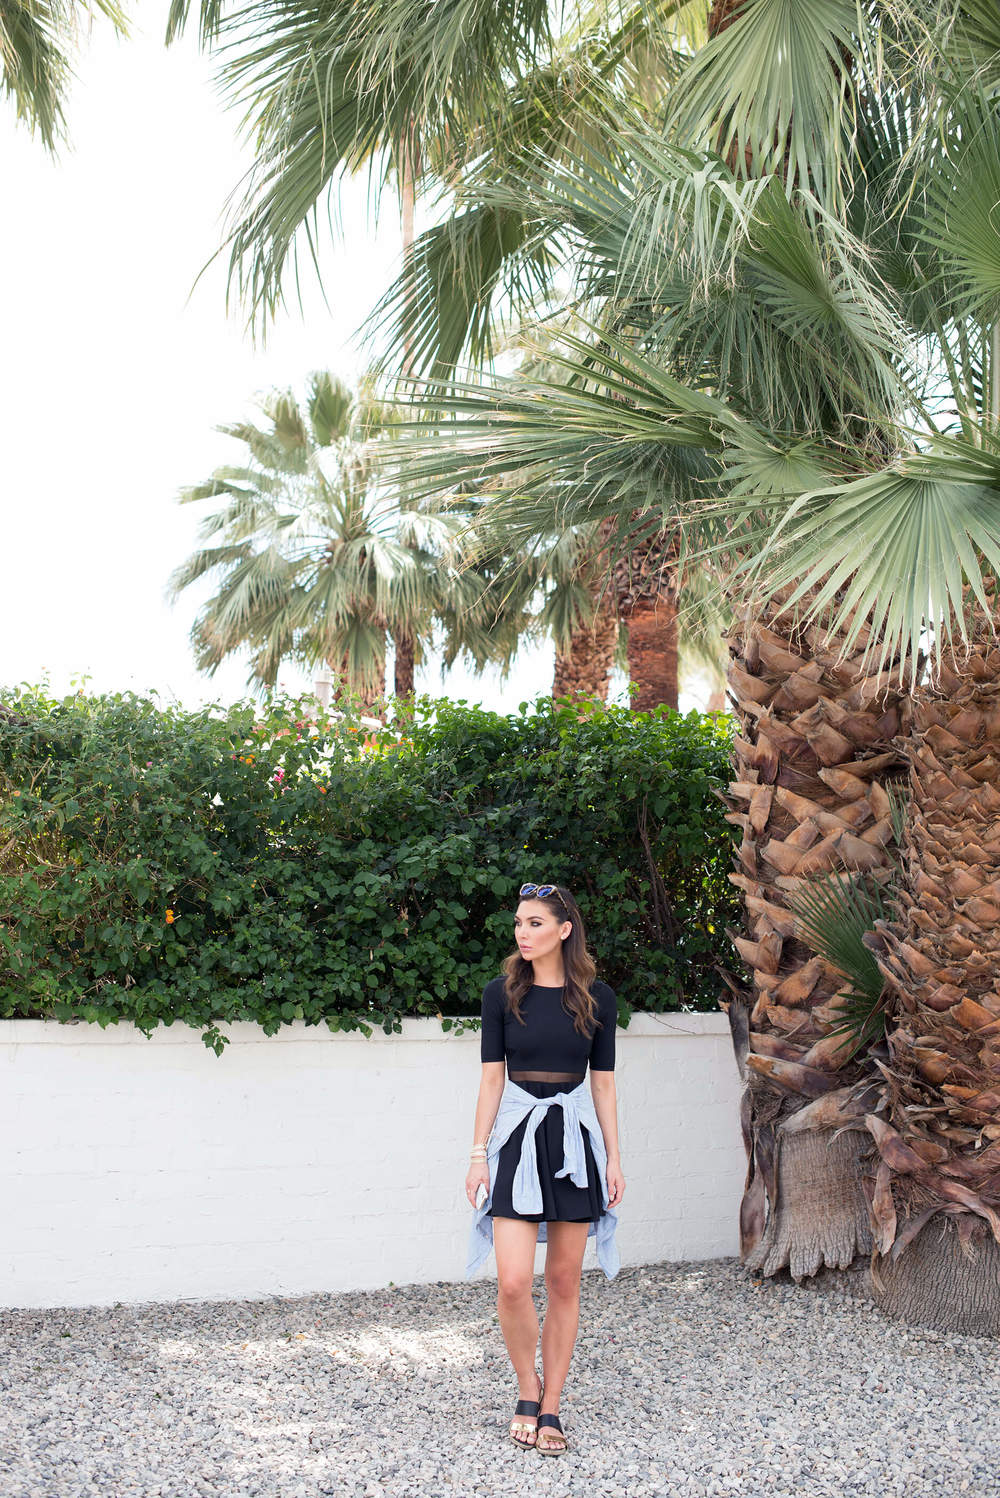 How to wear black for summer, layered with a button up shirt and sandals.